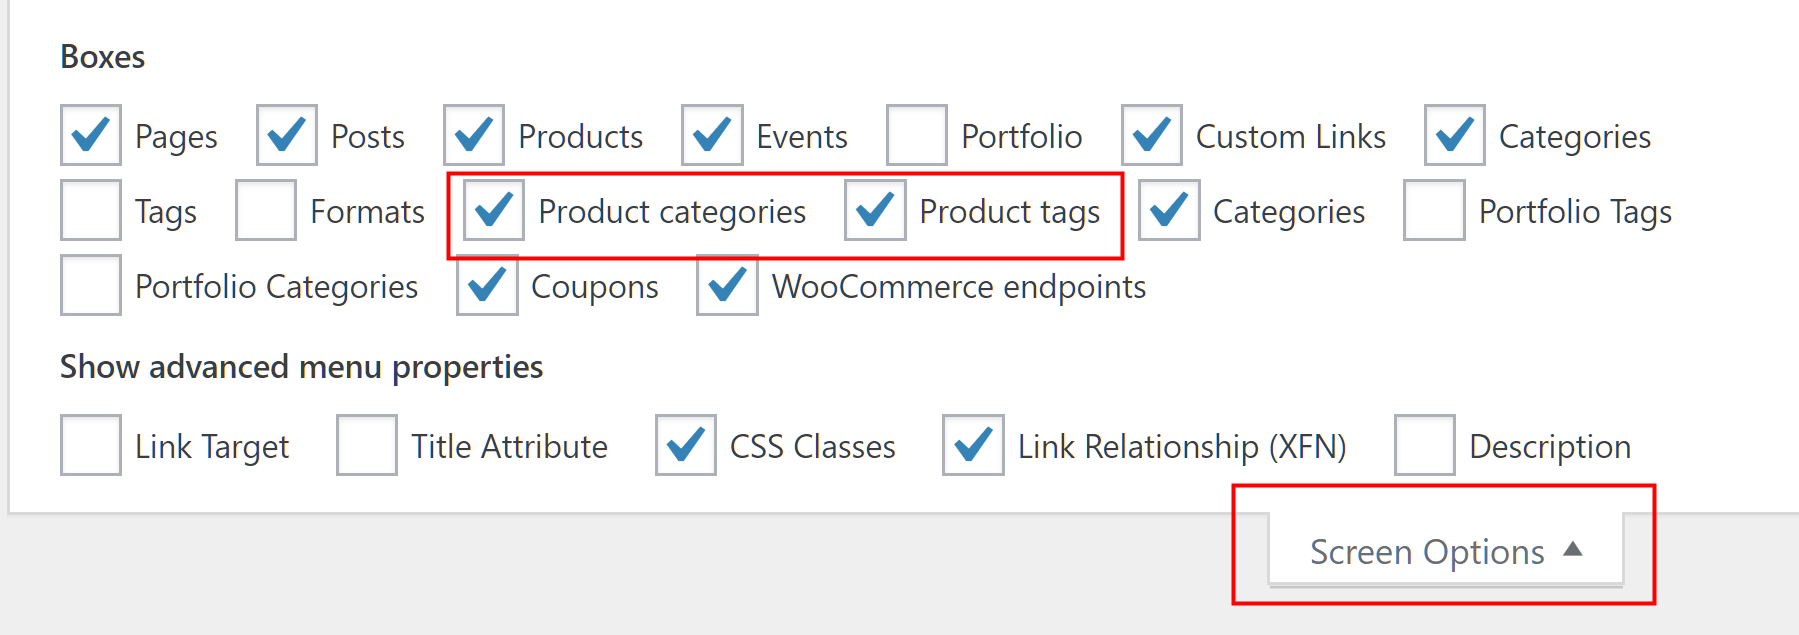 Product Category dropbox in navigation bar - Support - Apex